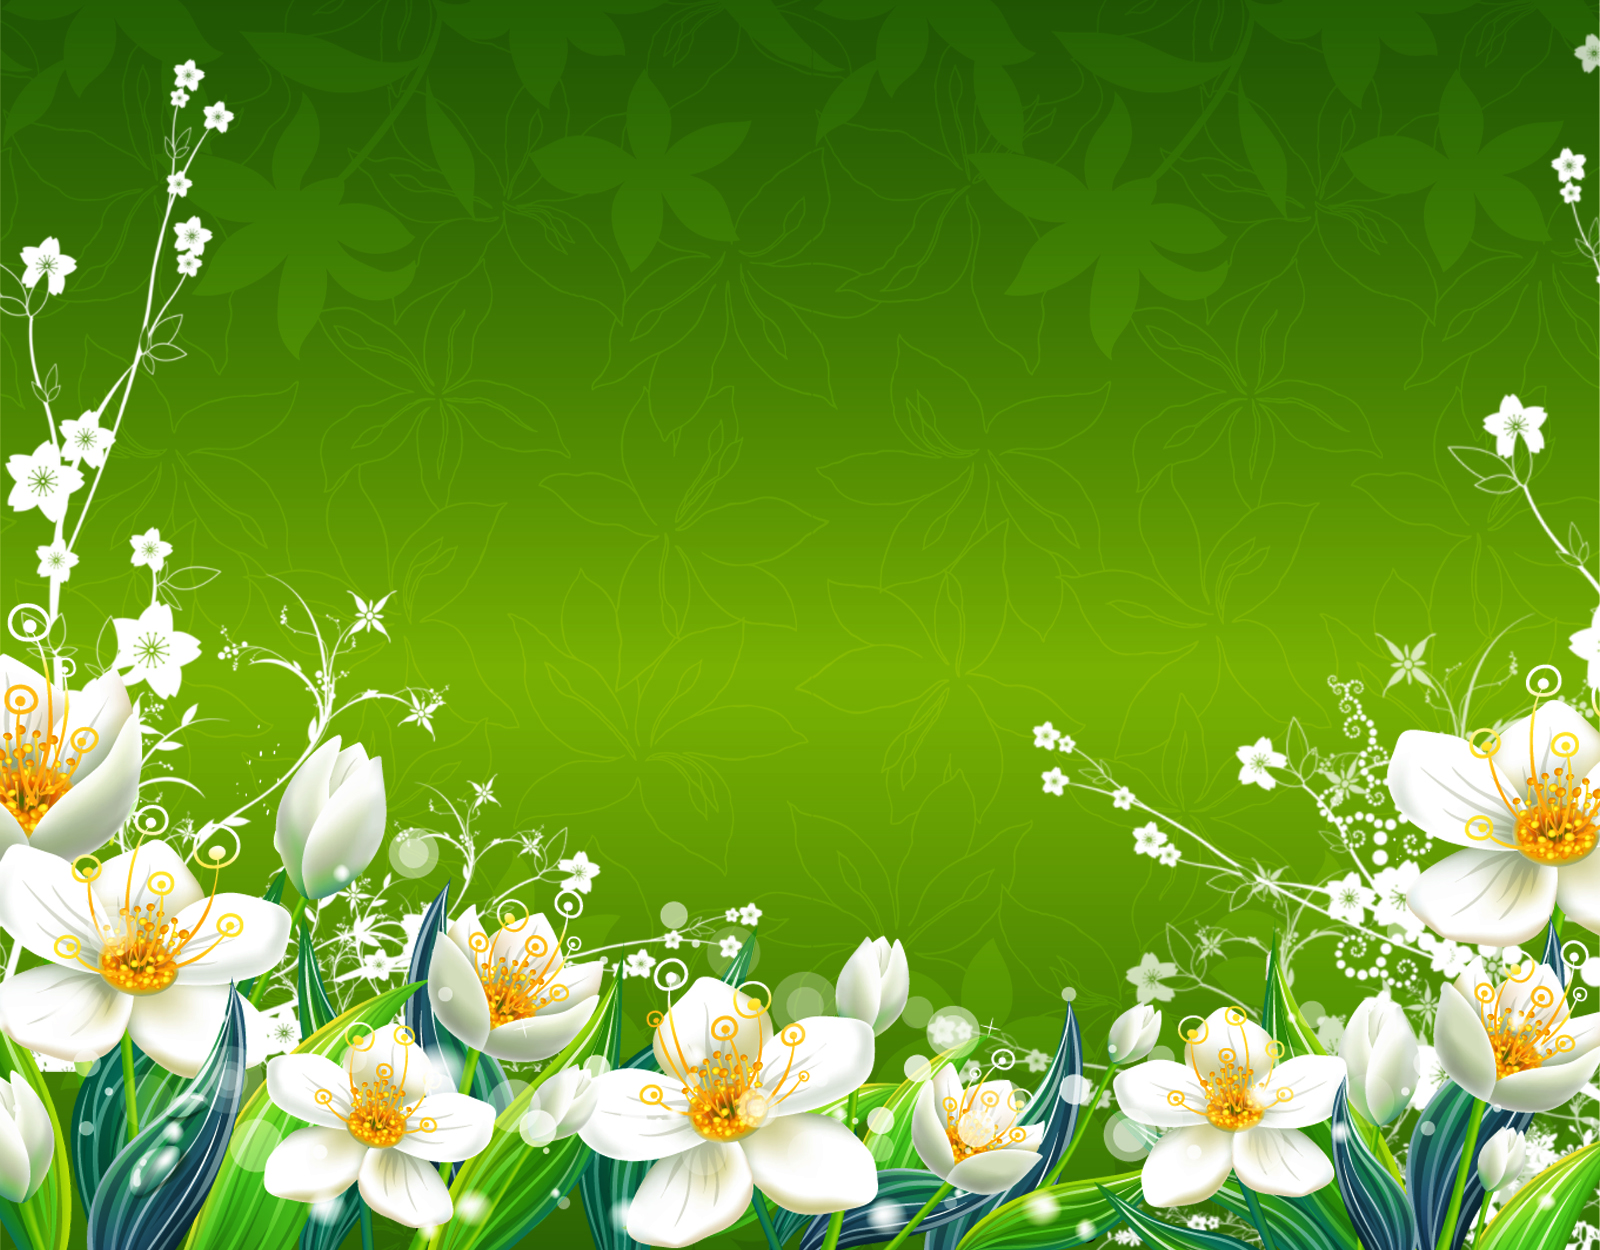 Green Flowers Wallpaper Green Flowers Spring Floral Green Flower Background Hd 1600x1250 Download Hd Wallpaper Wallpapertip